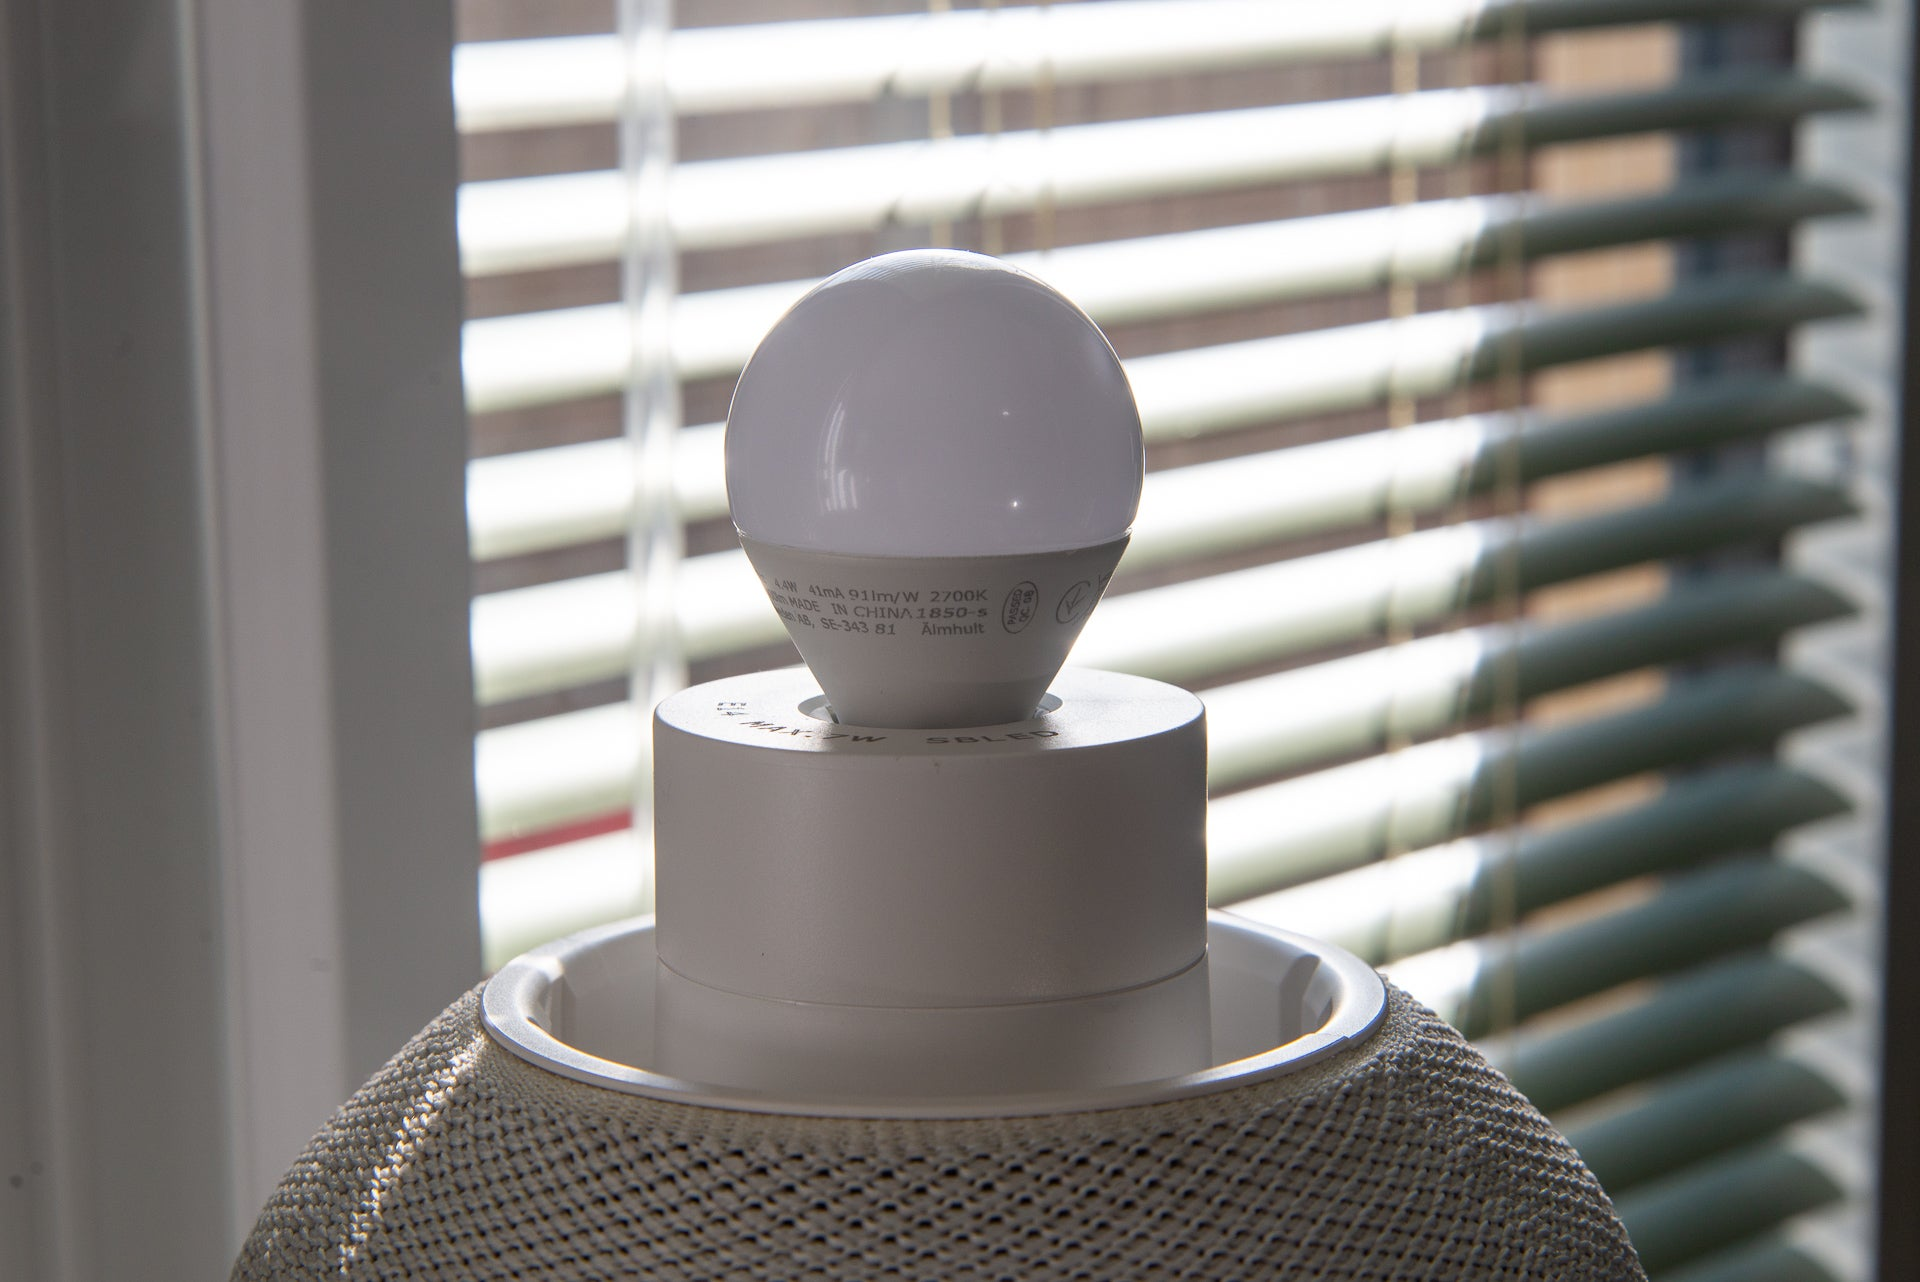 Ikea Symfonisk Table Lamp Speaker Get The Product Reviews